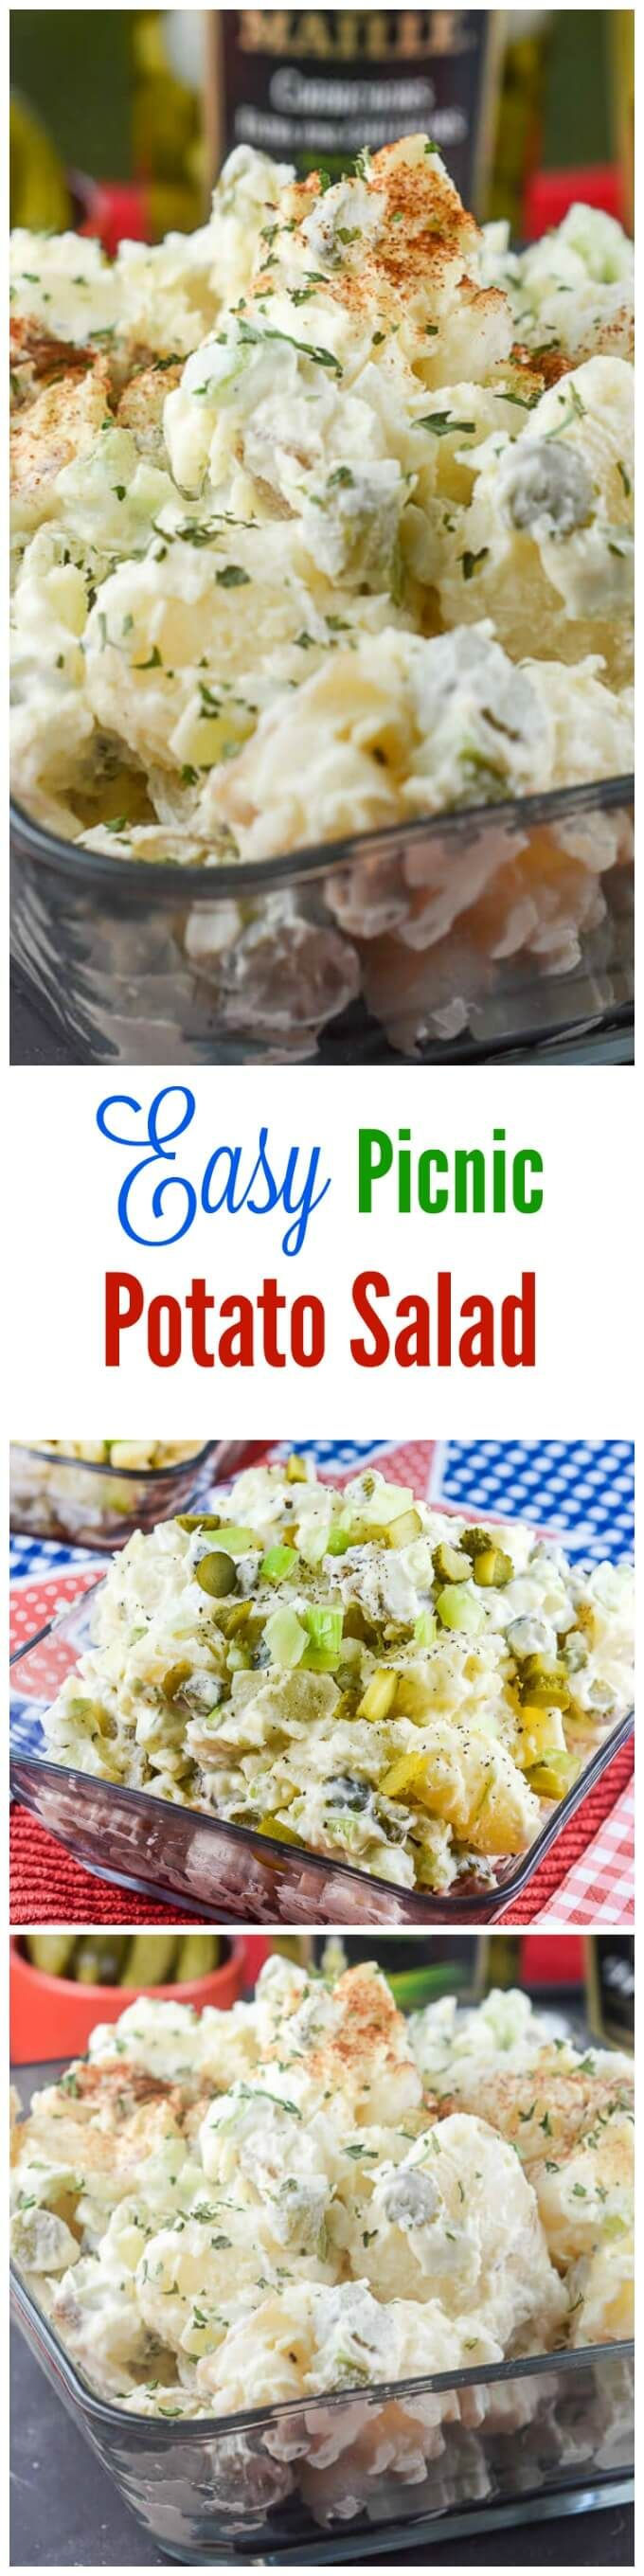 This Easy Picnic Potato Salad recipe makes your classic American potato salad that is perfect to take to a picnic or potluck this summer. ~ http://FlavorMosaic.com